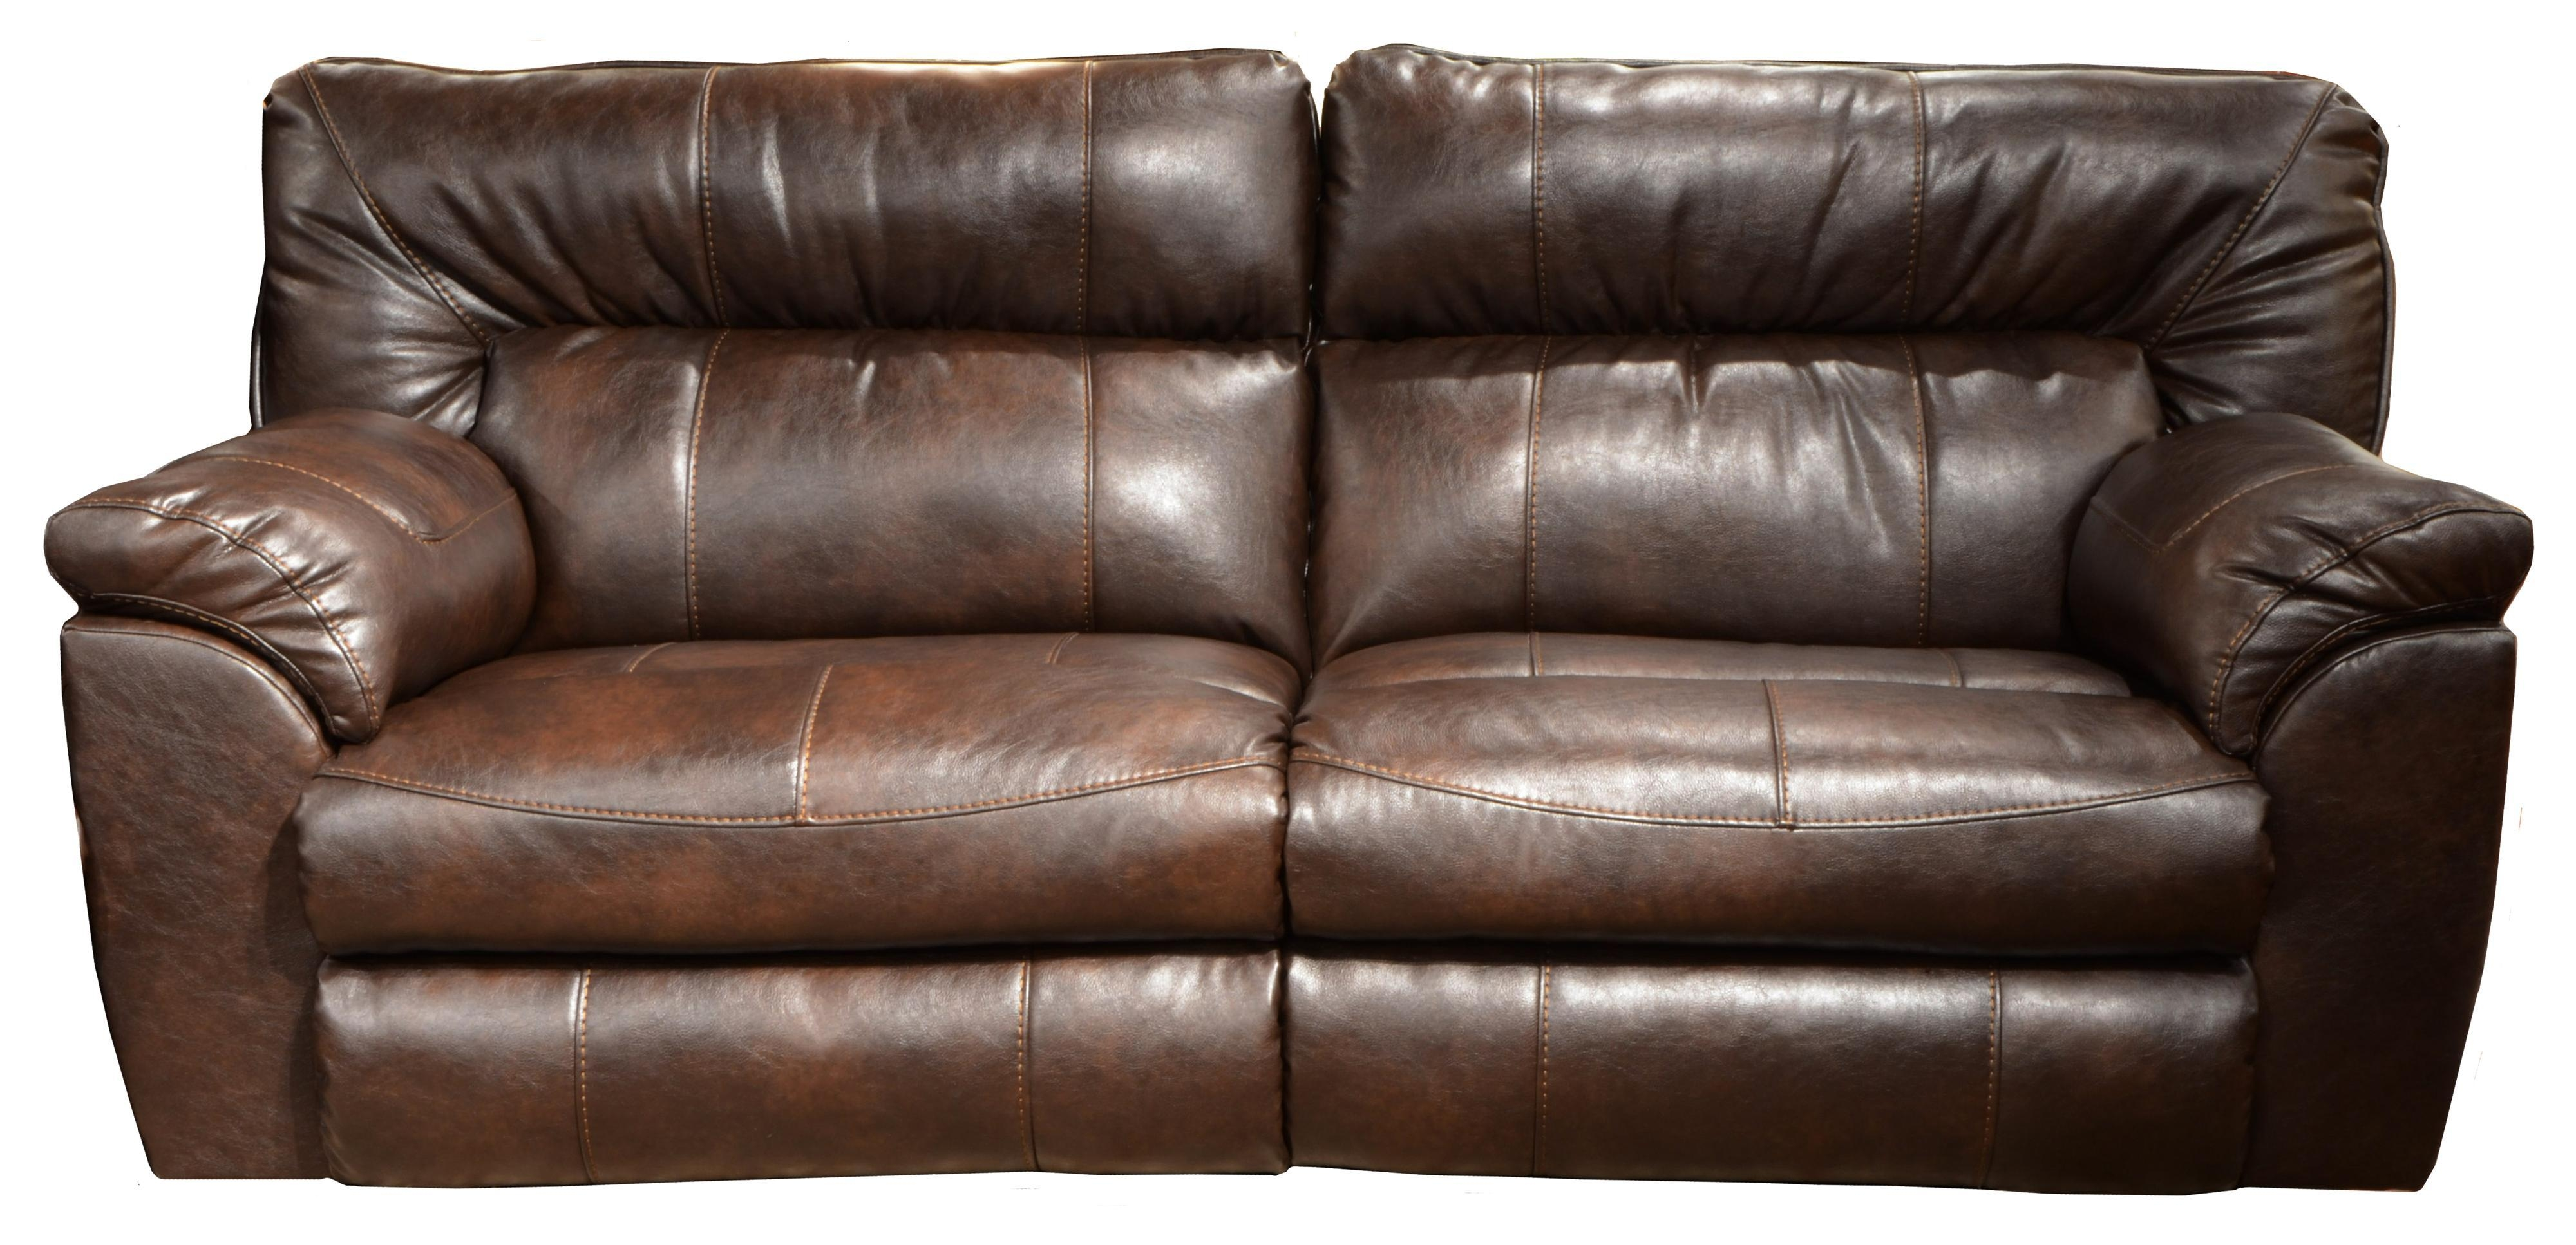 Catnapper Maverick Extra Wide Reclining Sofa – Efo Furniture Inside Catnapper Recliner Sofas (Image 8 of 20)